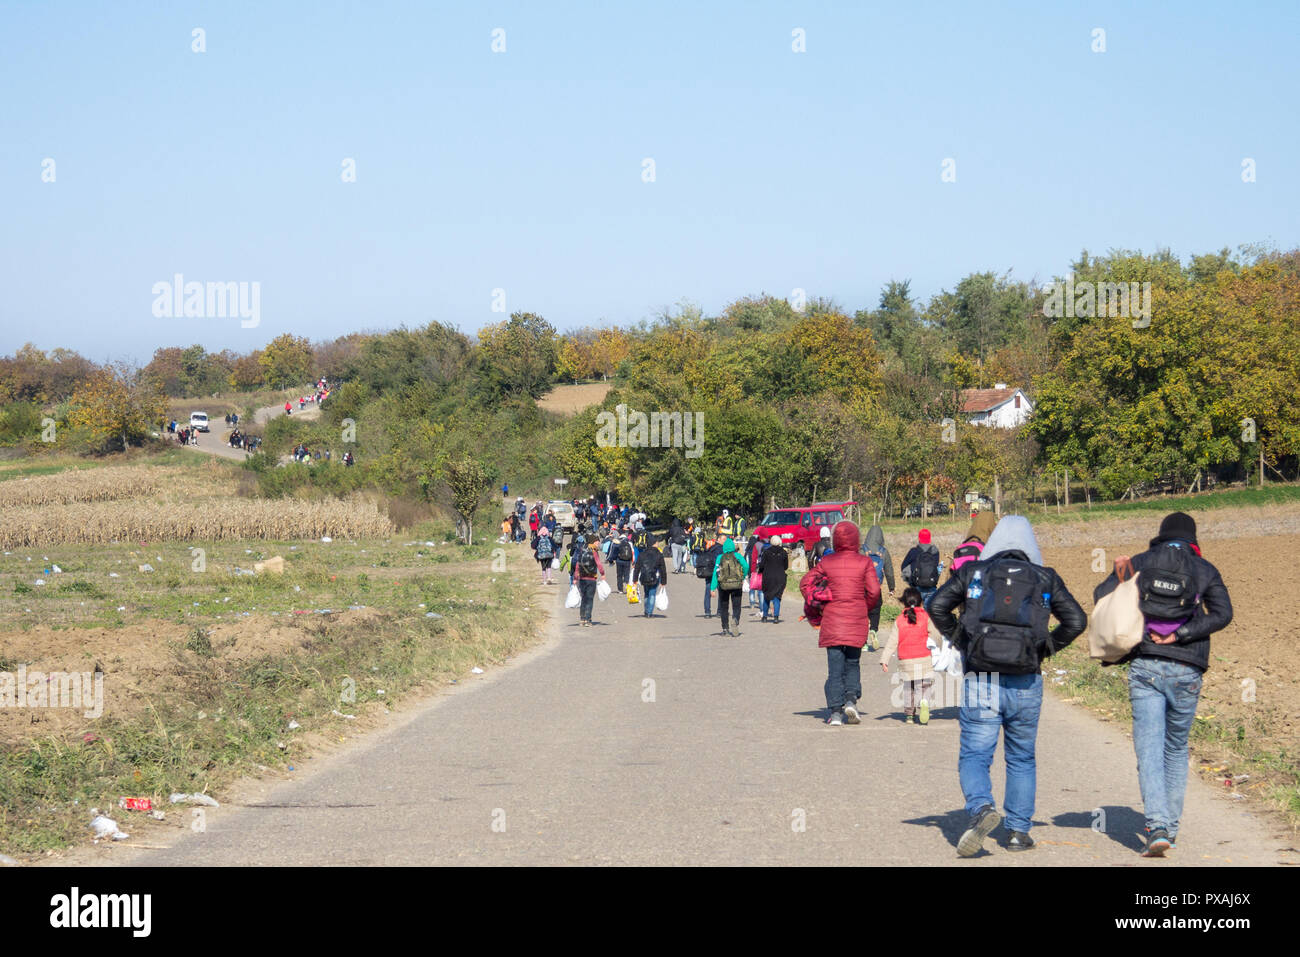 BERKASOVO, SERBIA - OCTOBER 31, 2015: Refugees walking in column on a road on the way to the Croatia Serbia border, on the Balkans Route, during the R - Stock Image